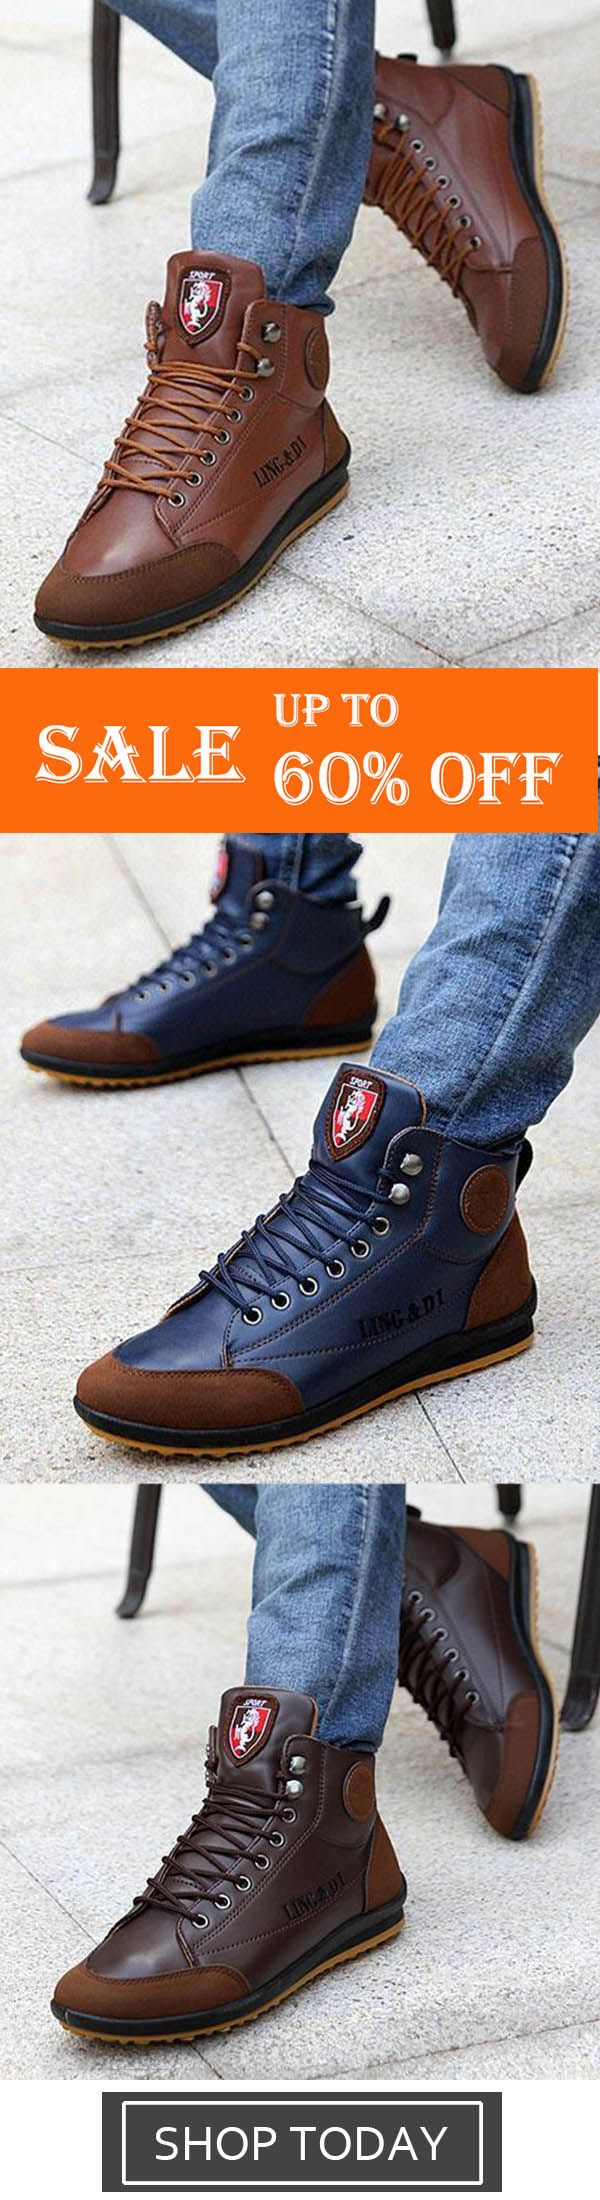 Comfy Casual High Top Sneakers Ankle Boots Lace Up Shoes – Jürgen Hoffmann